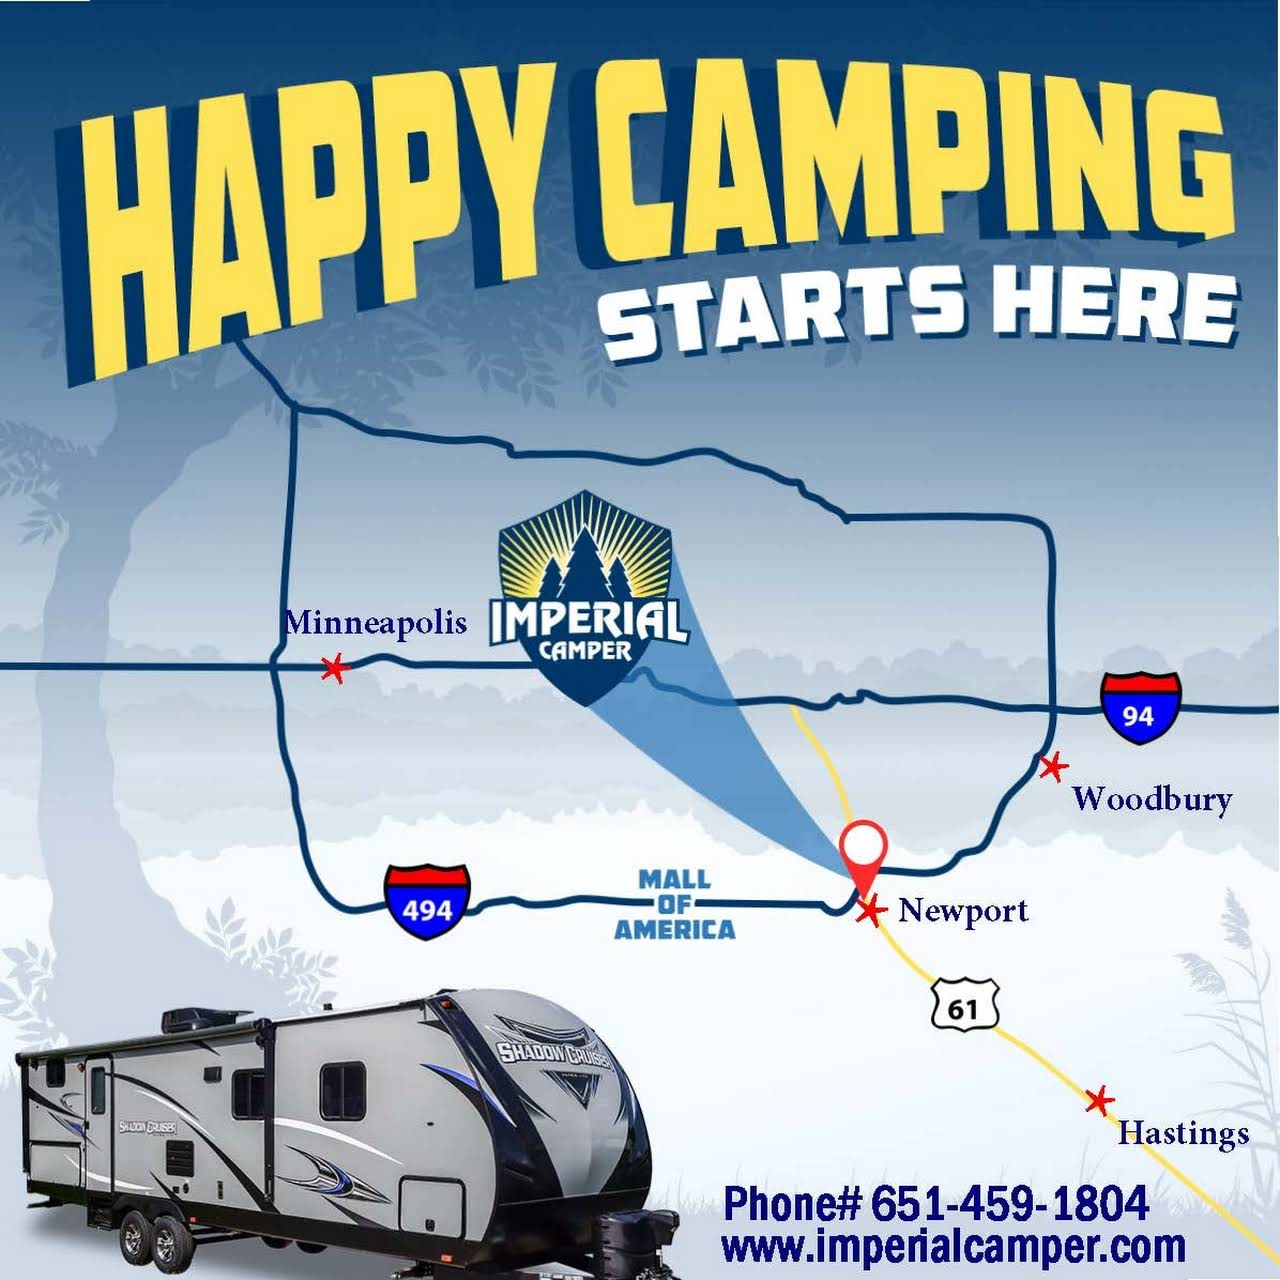 Imperial Camper Your Full Service Family Owned Rv Dealership And Service Center Located Just East Of Mall Of America 5 Minutes South West Of Woodbury